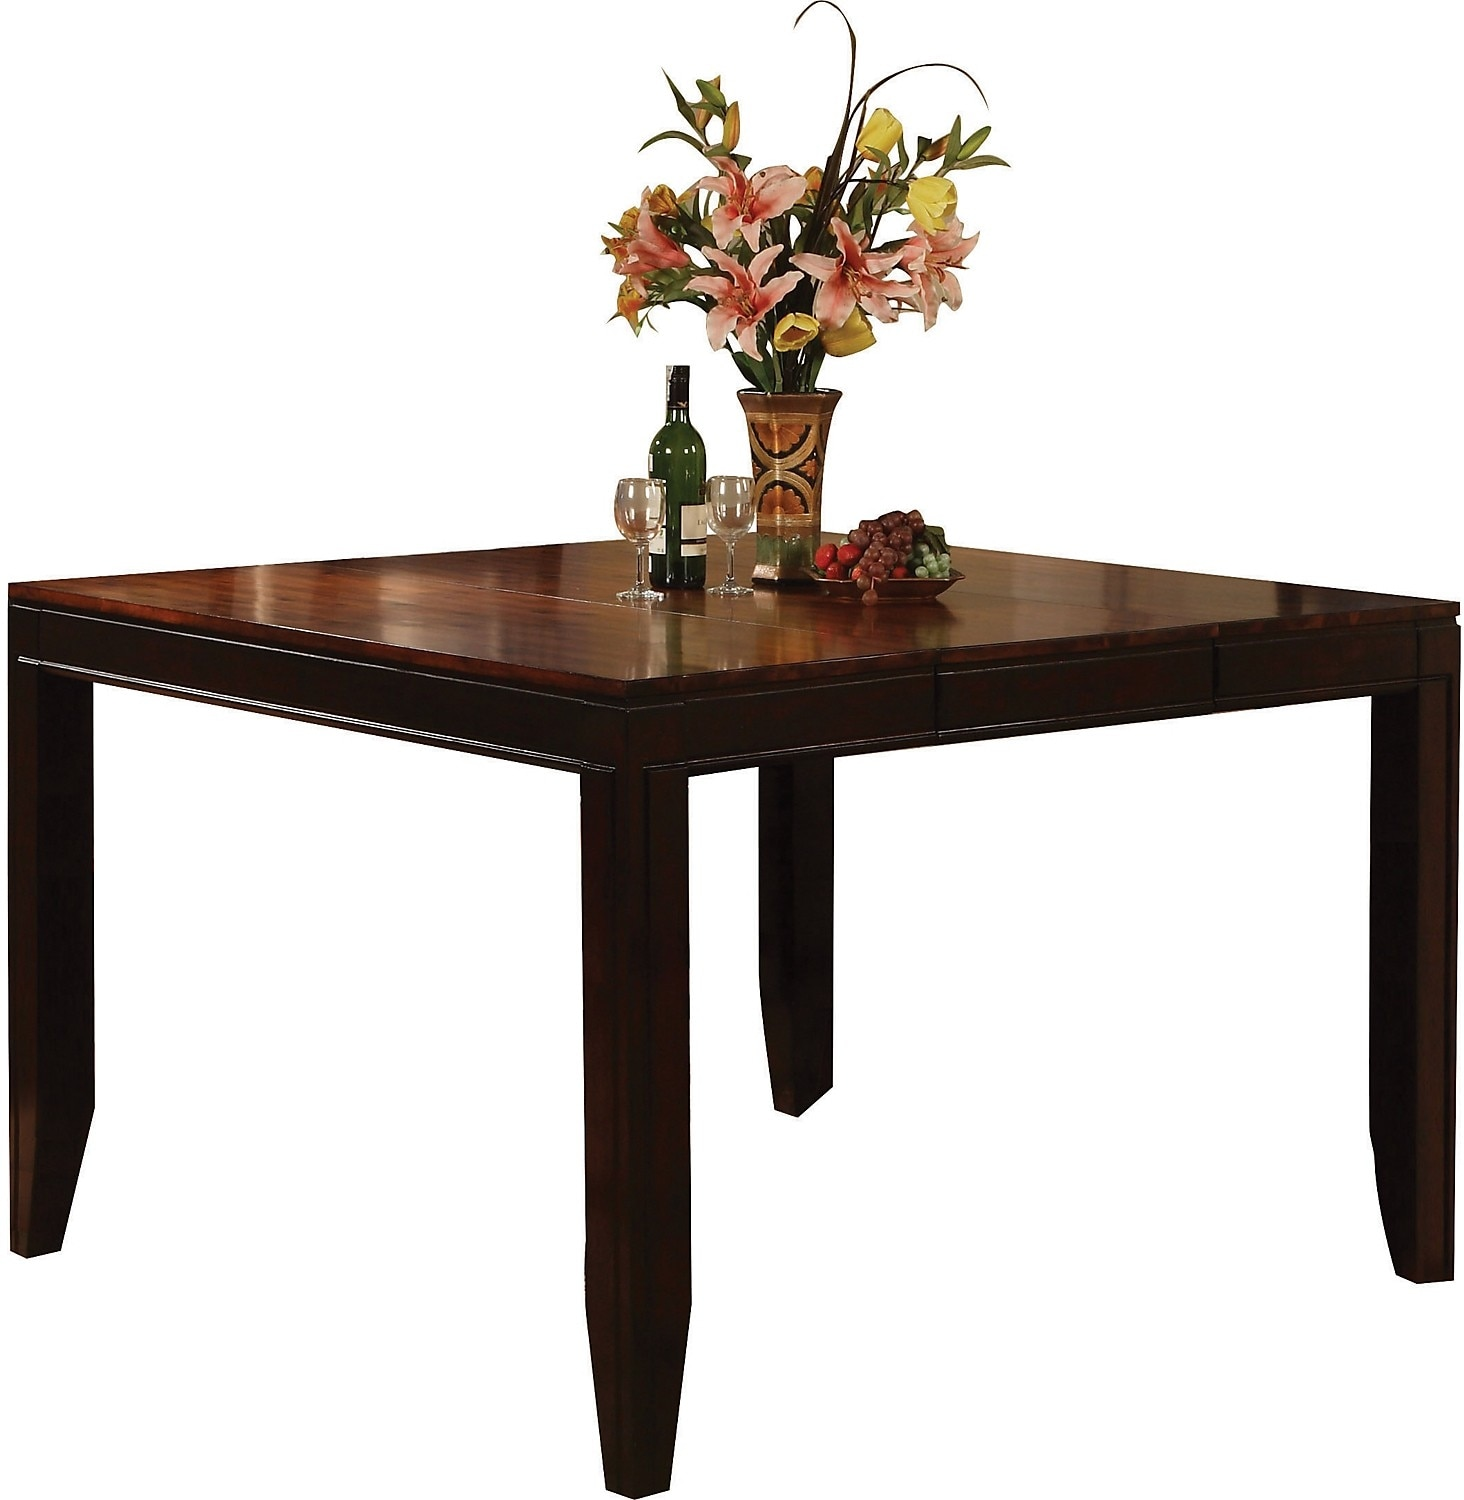 Dining Room Furniture - Zara Counter-Height Dining Table